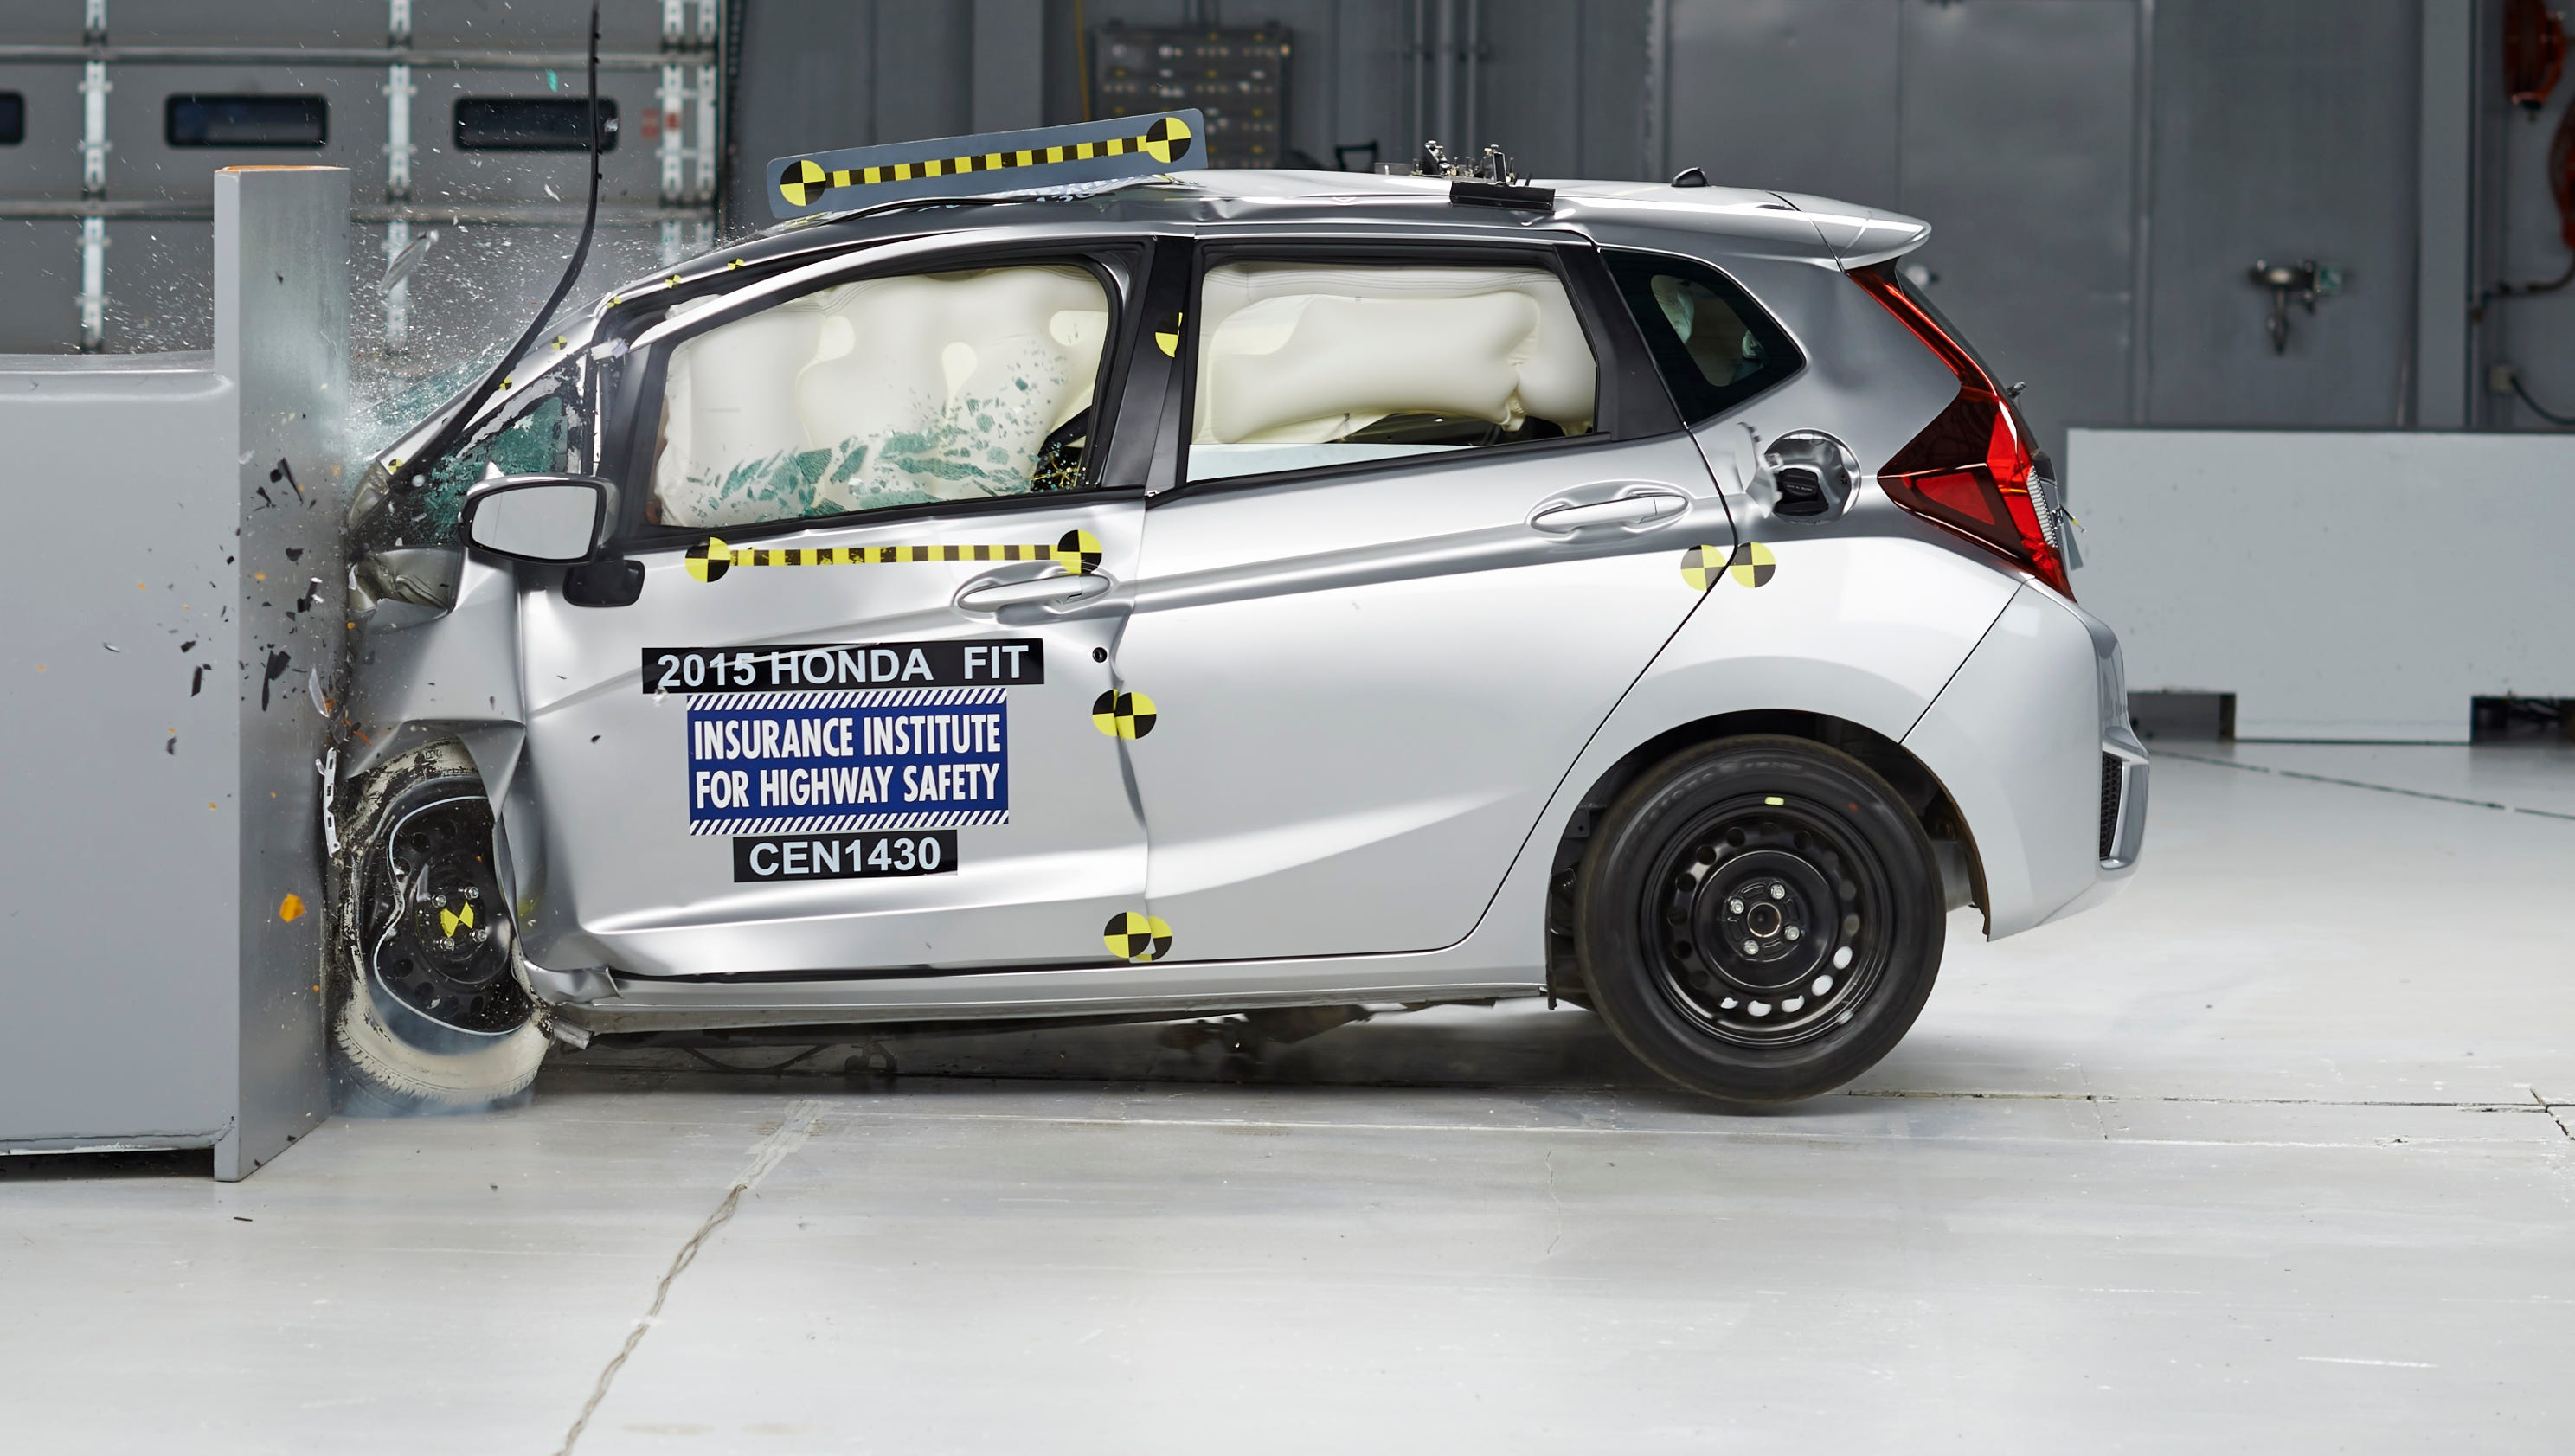 mad honda industries hd fit carsinvasion pictures com thumbnail photo